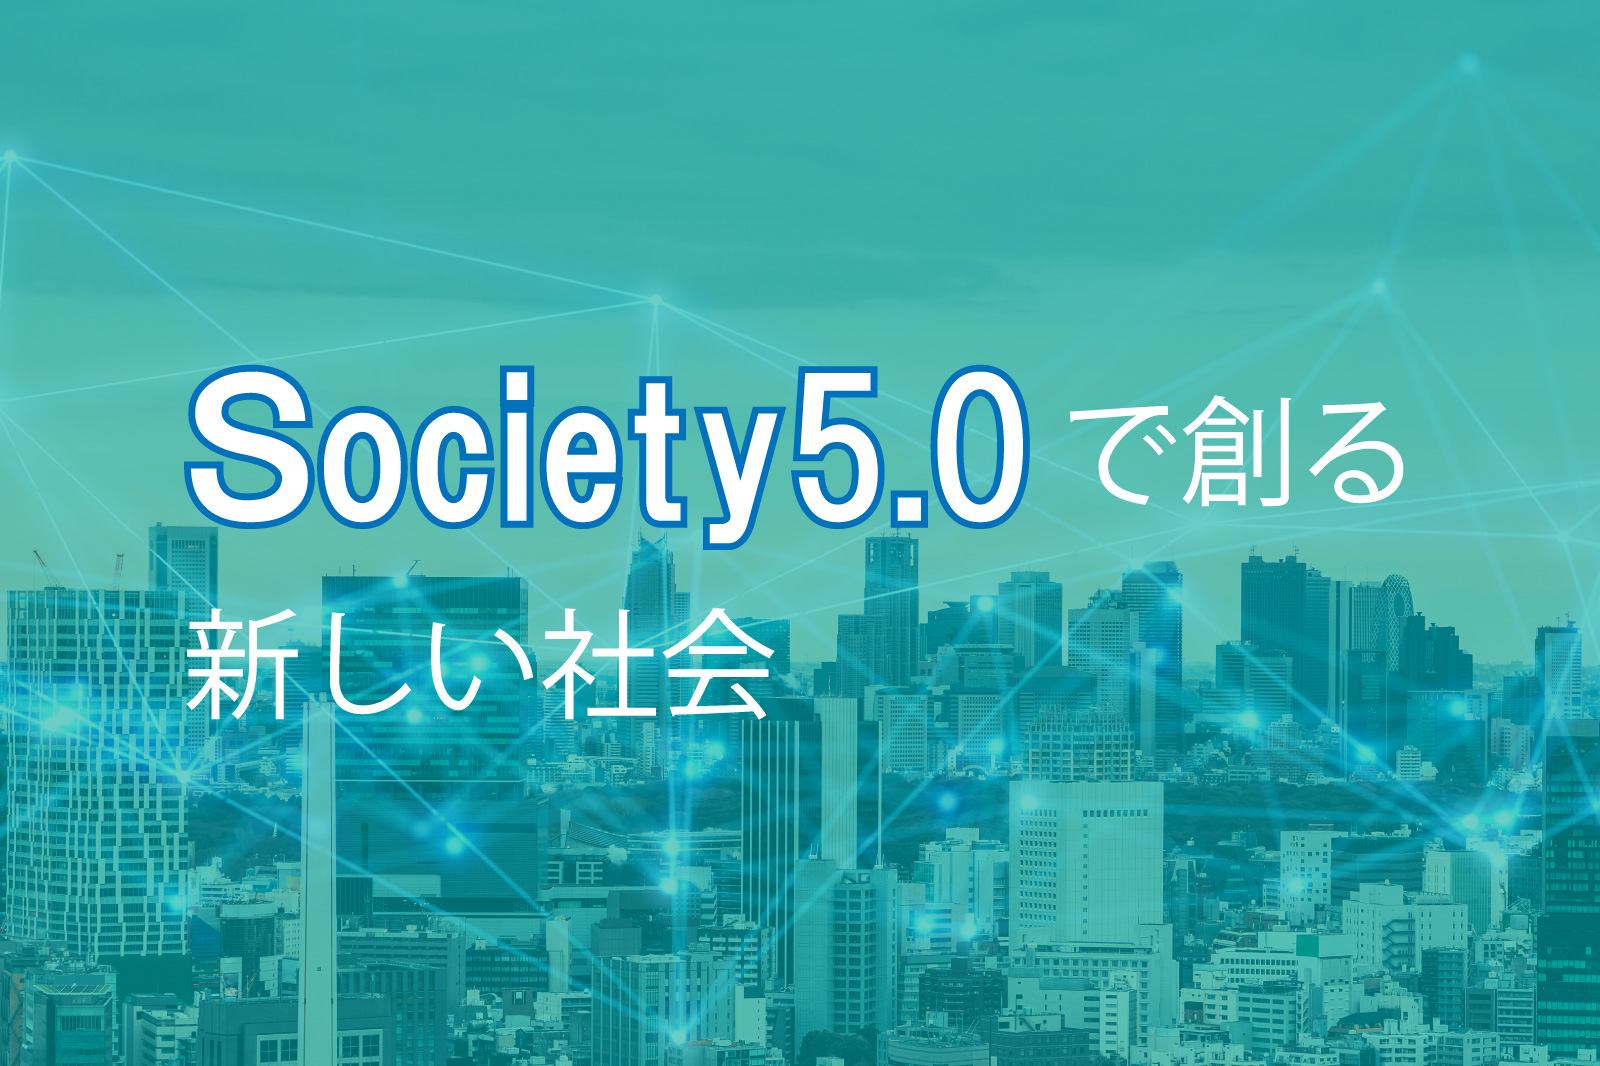 Society5.0で創る新しい社会